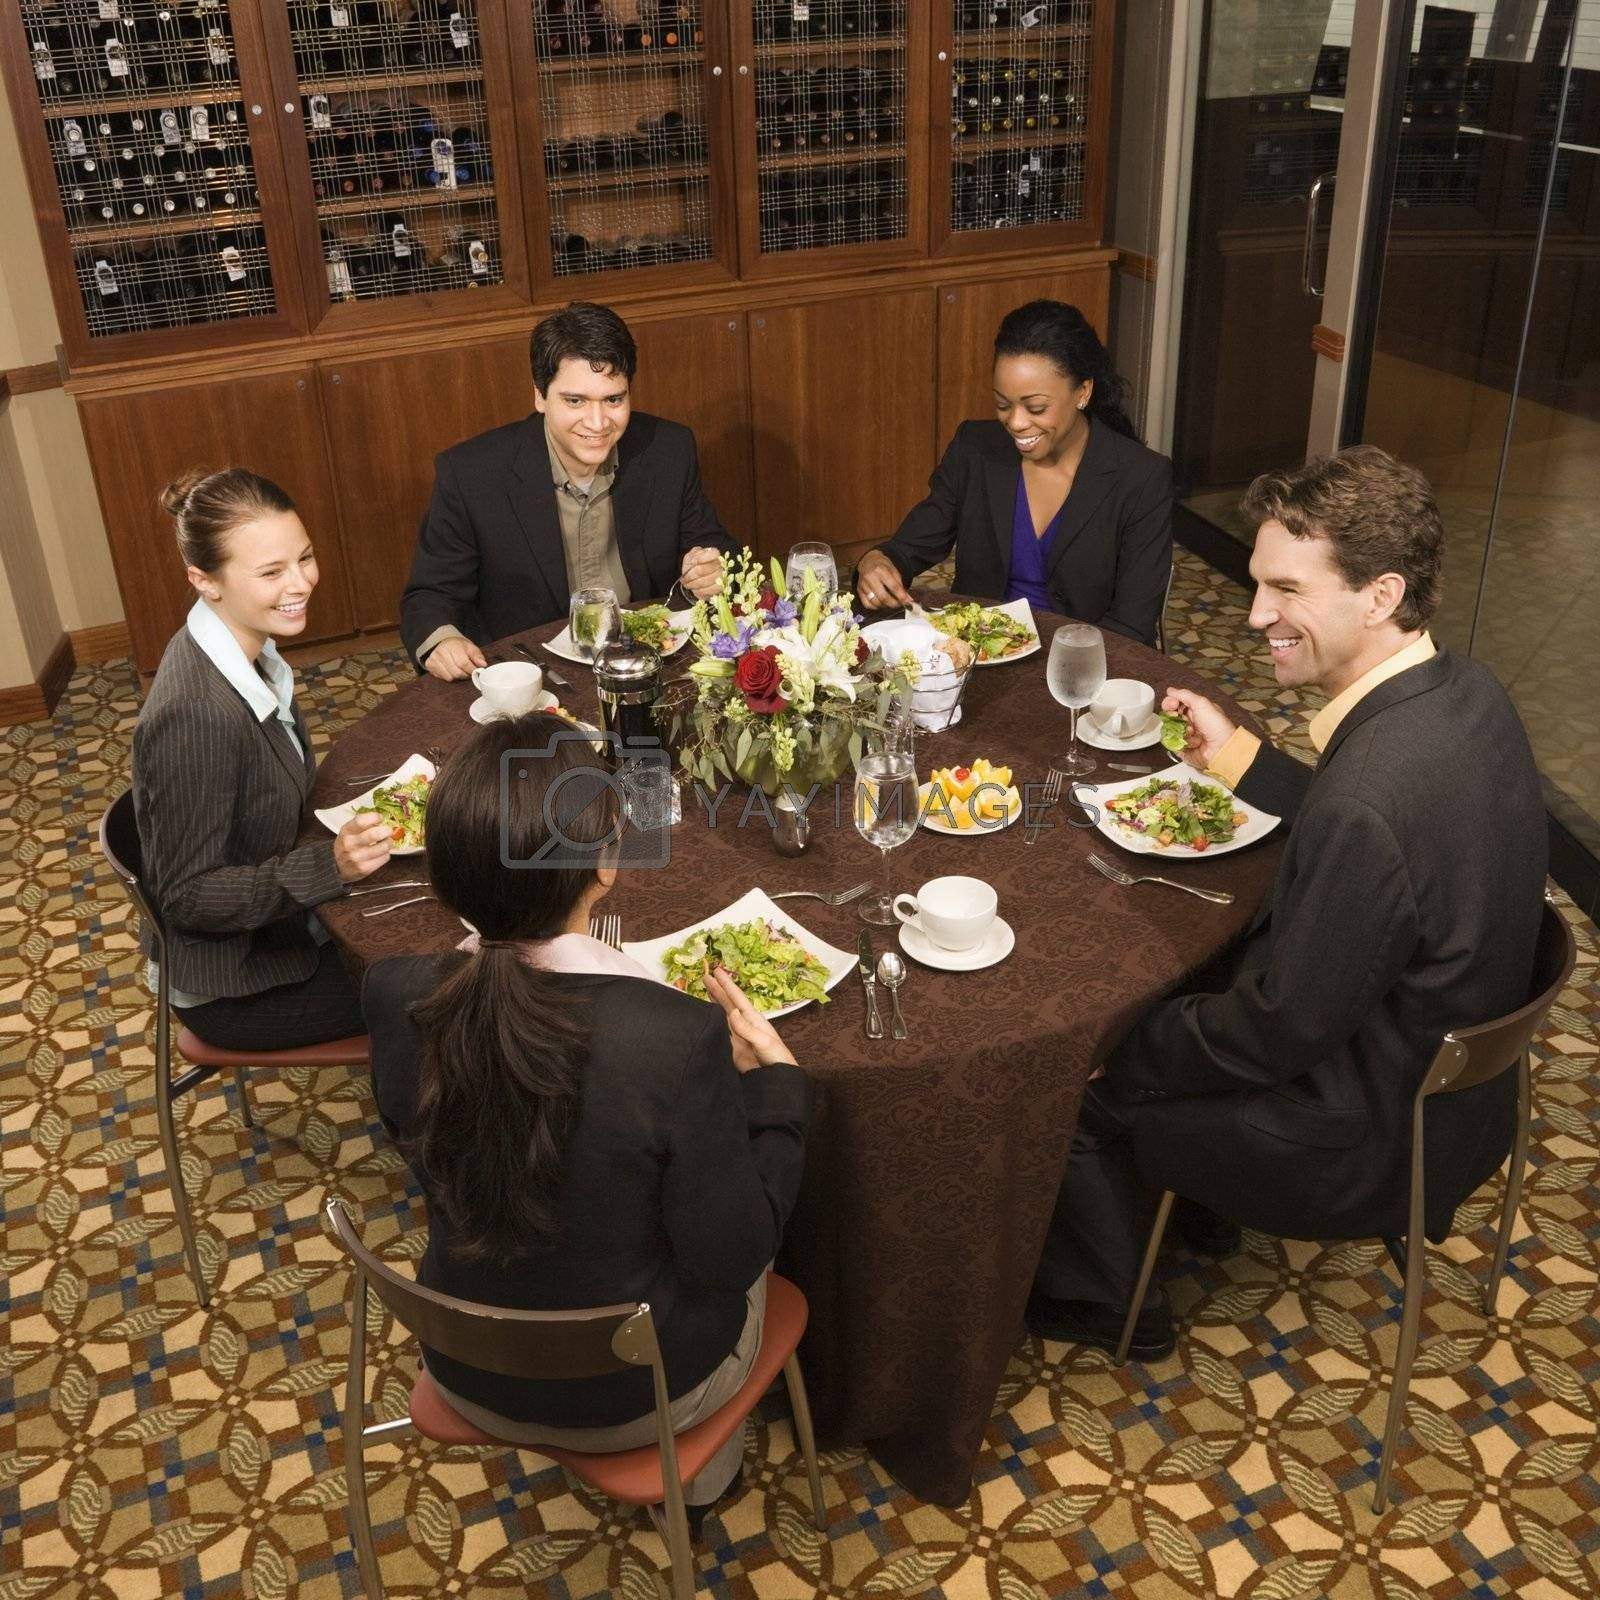 High angle of group of businesspeople in restaurant dining.